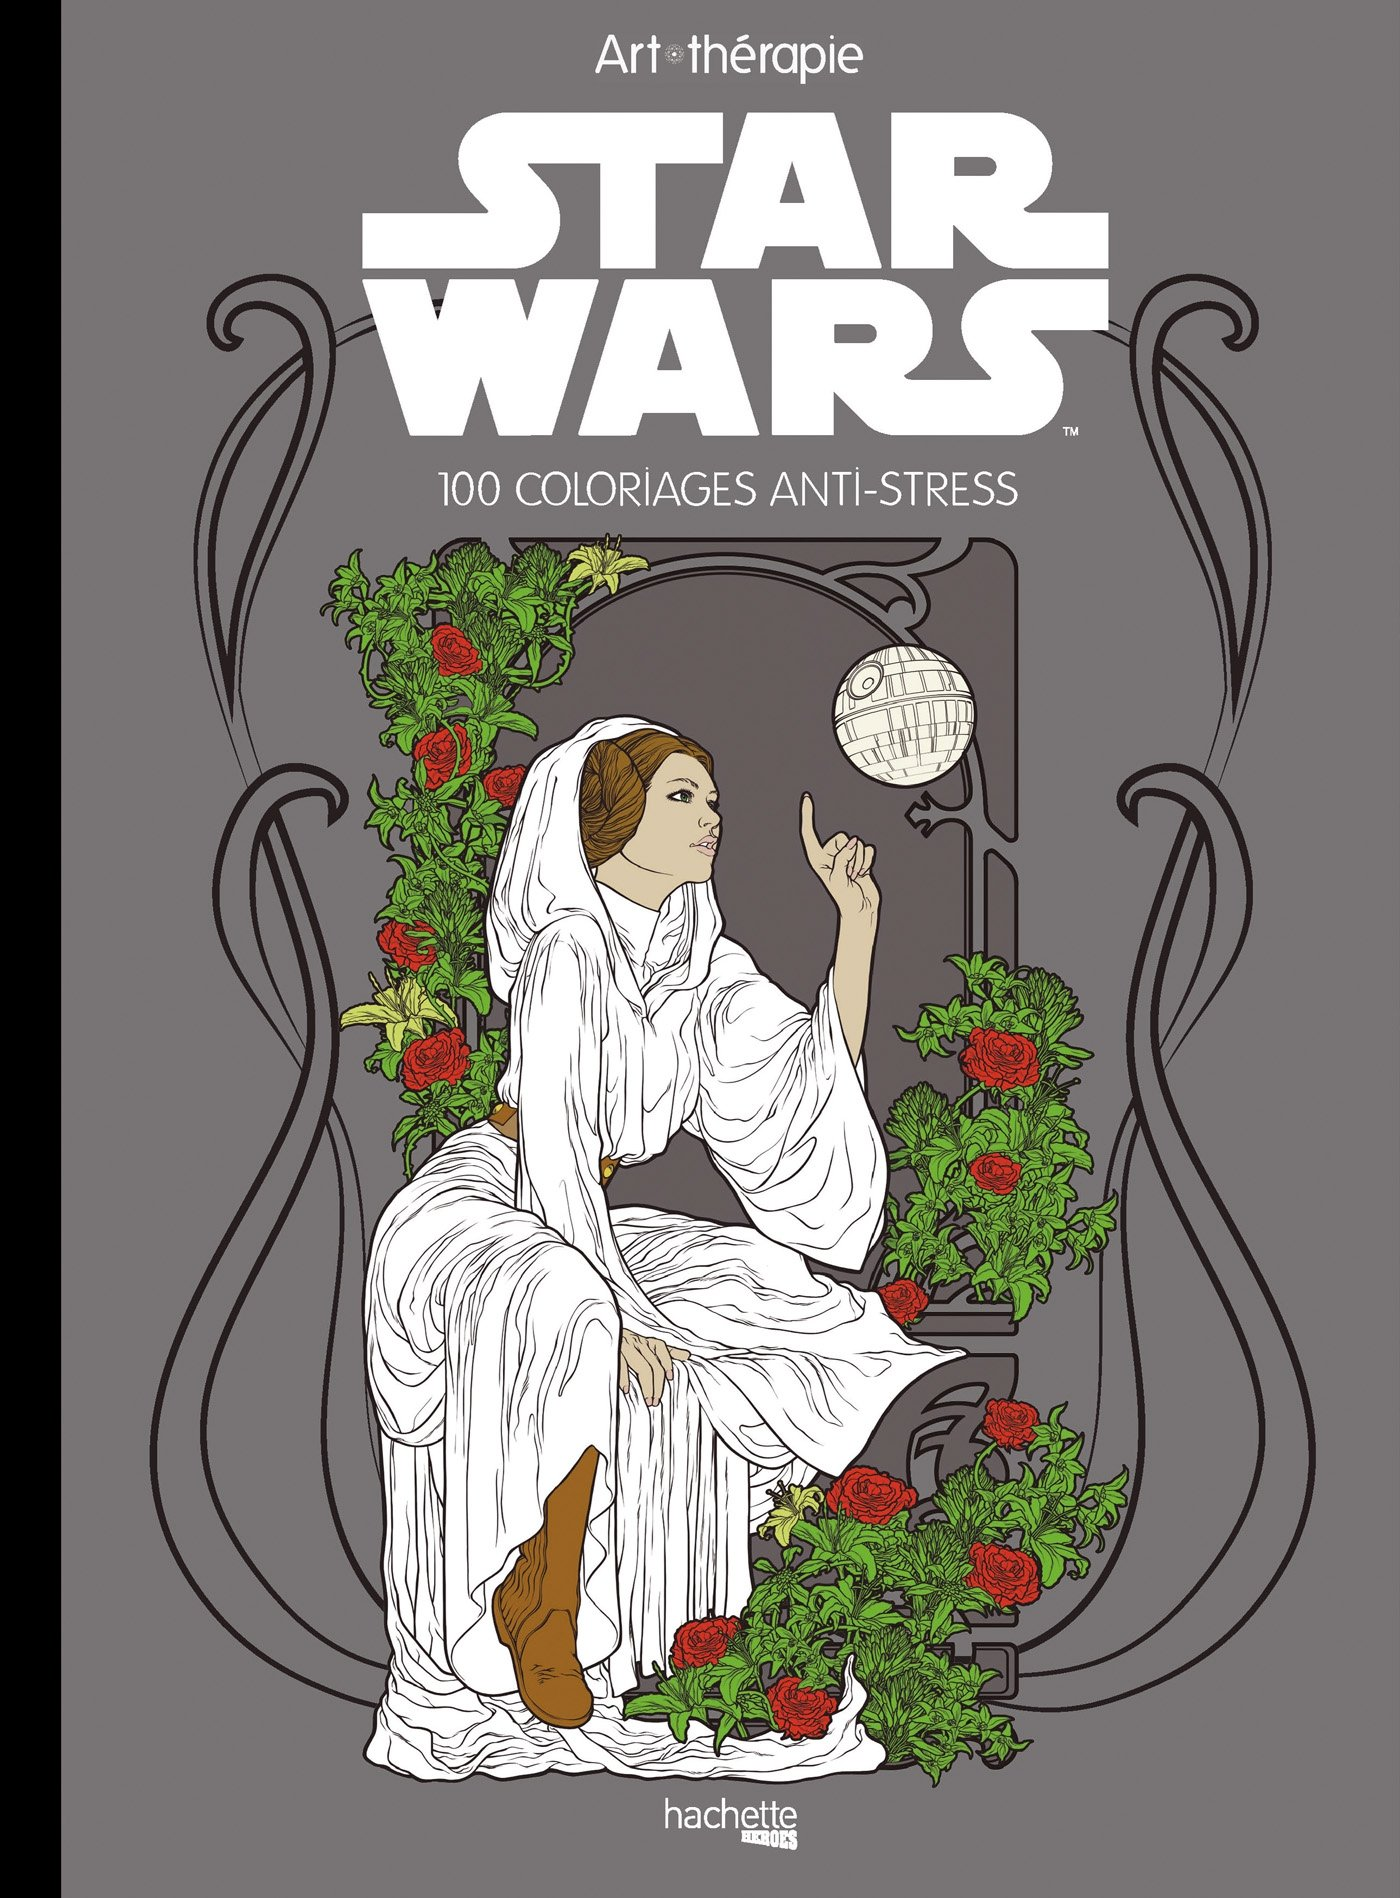 Star Wars 100 coloriages anti stress Amazon Nicolas Beaujouan Books